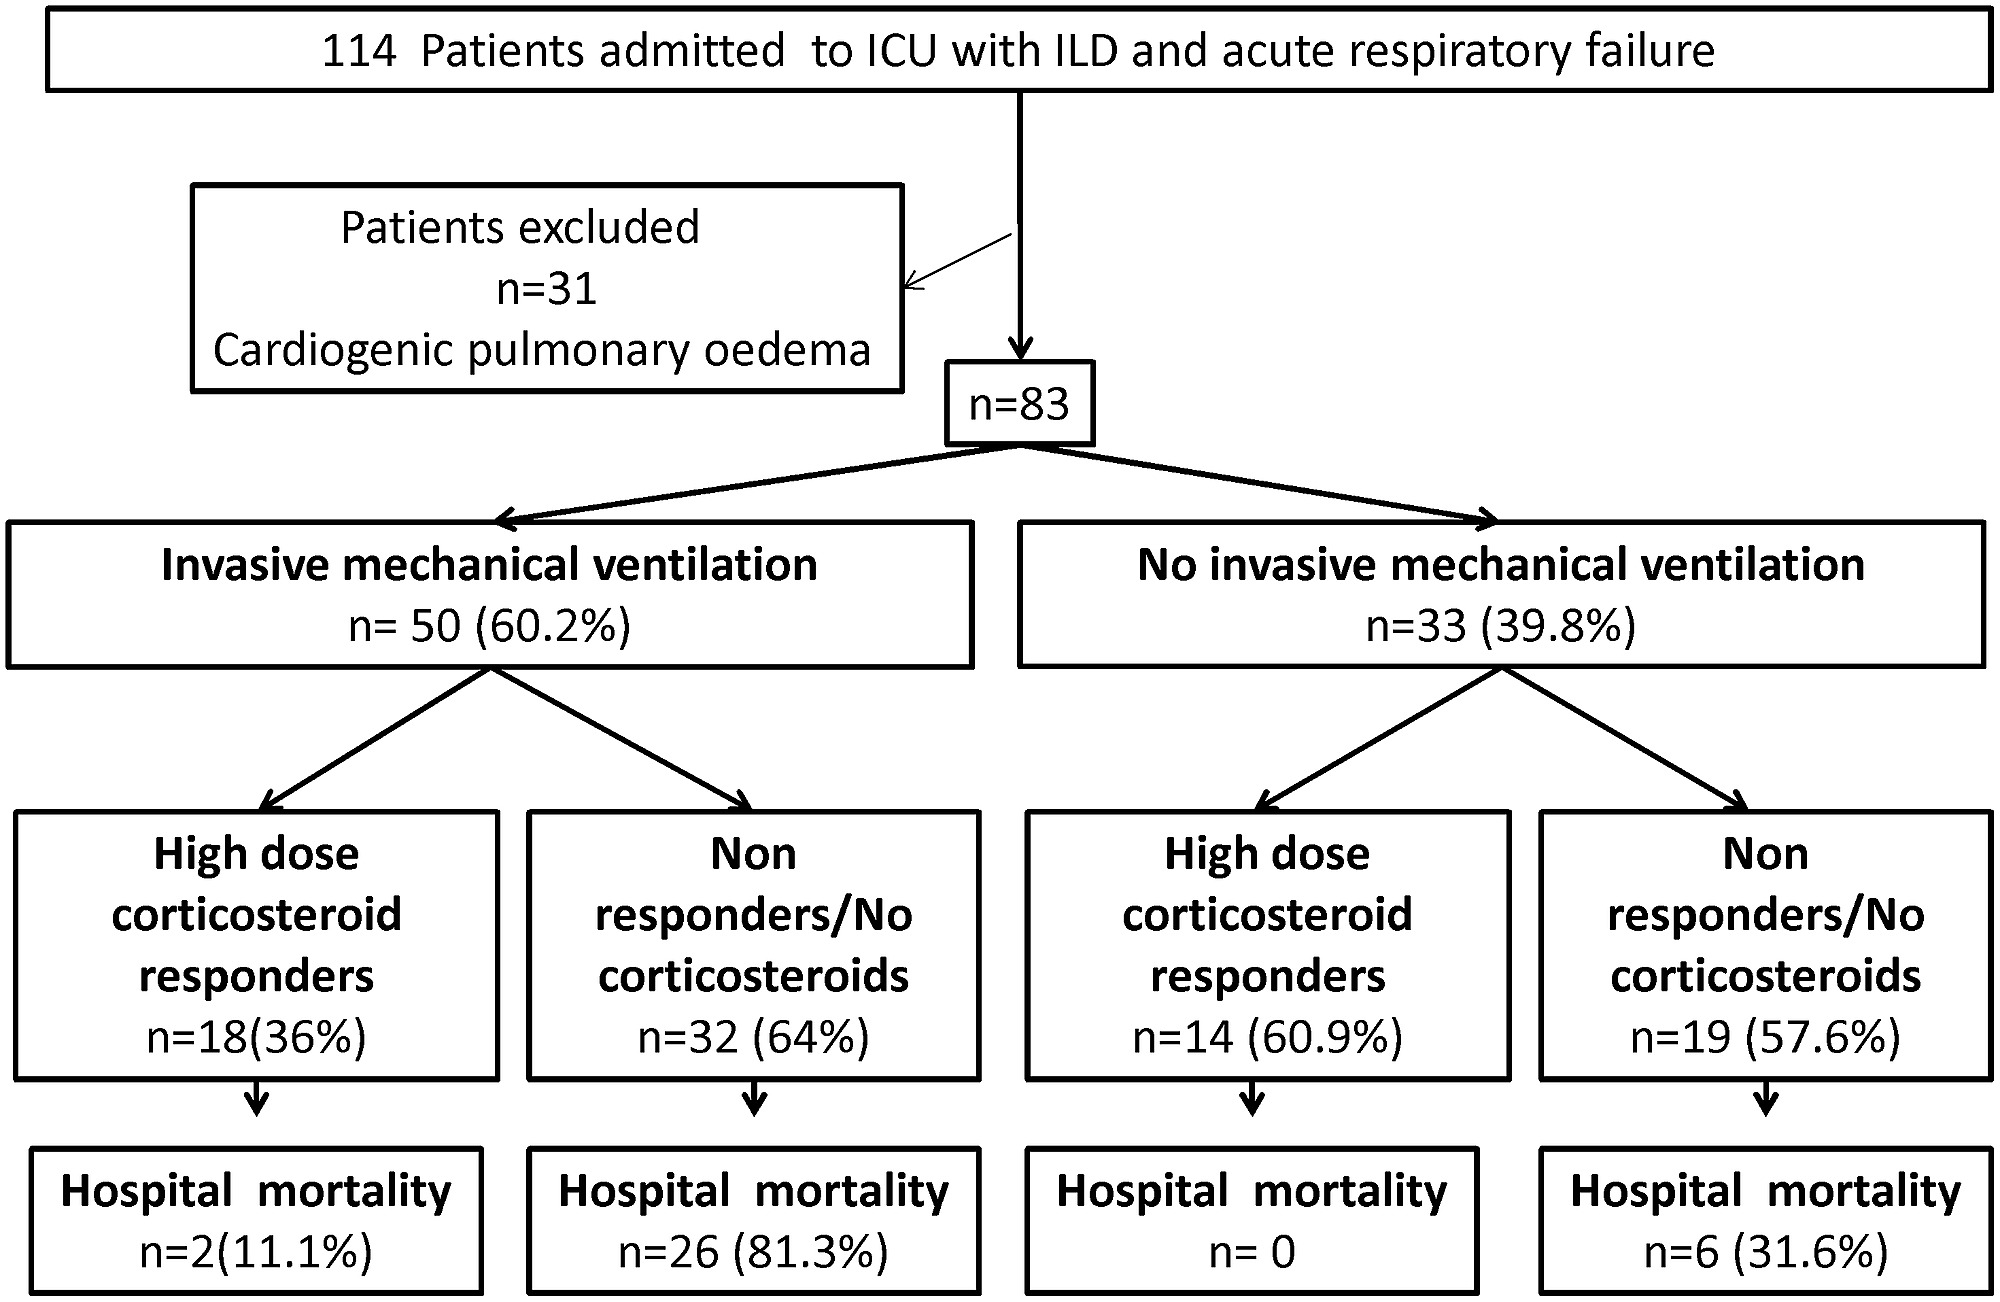 Flow Chart Of Patients Admitted To The Icu Between 2002 And 2013 For